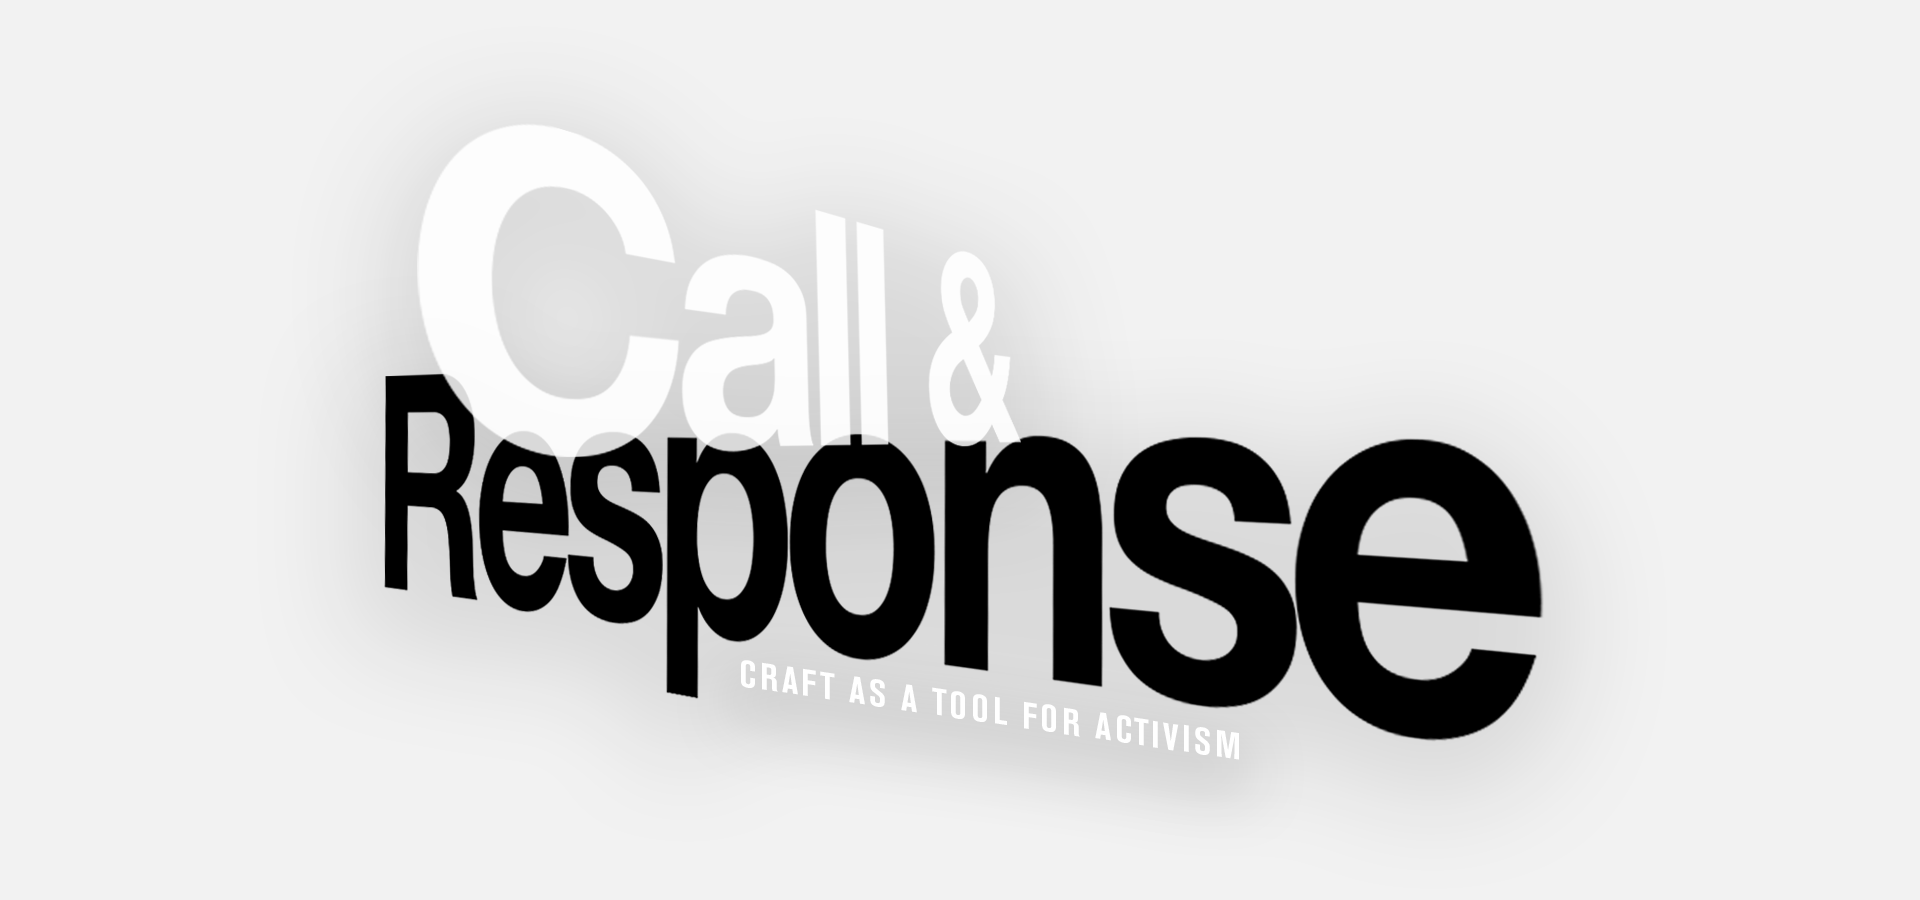 Call and Response text